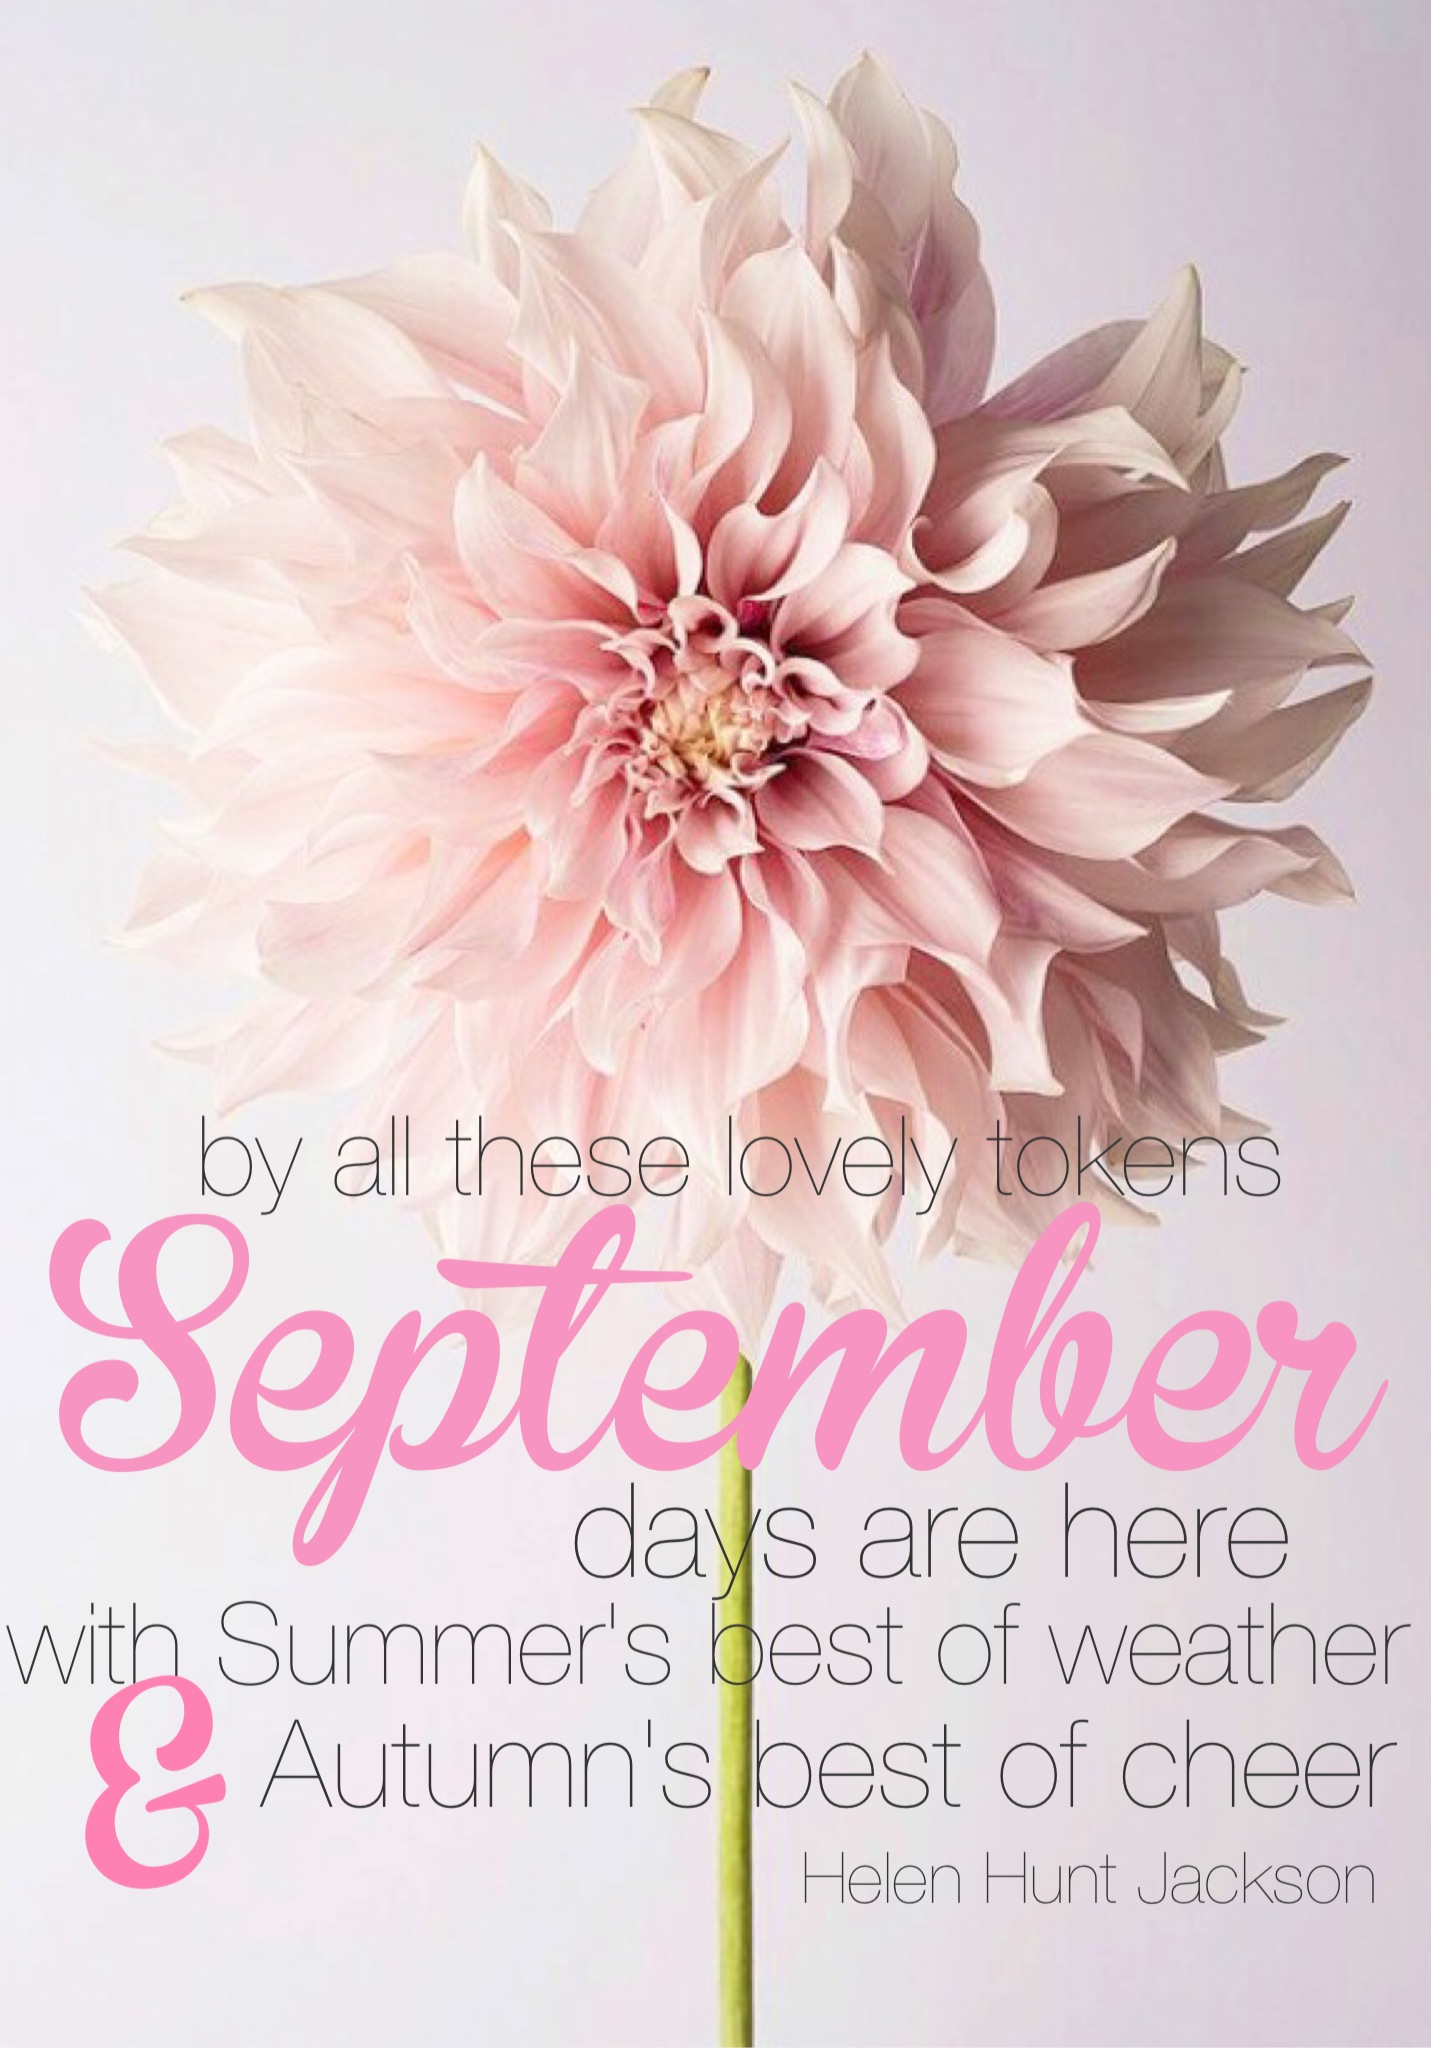 September Quote. September. Helen Hunt Jackson. Dahlia. Pretty. Pink flower. Pretty flower.